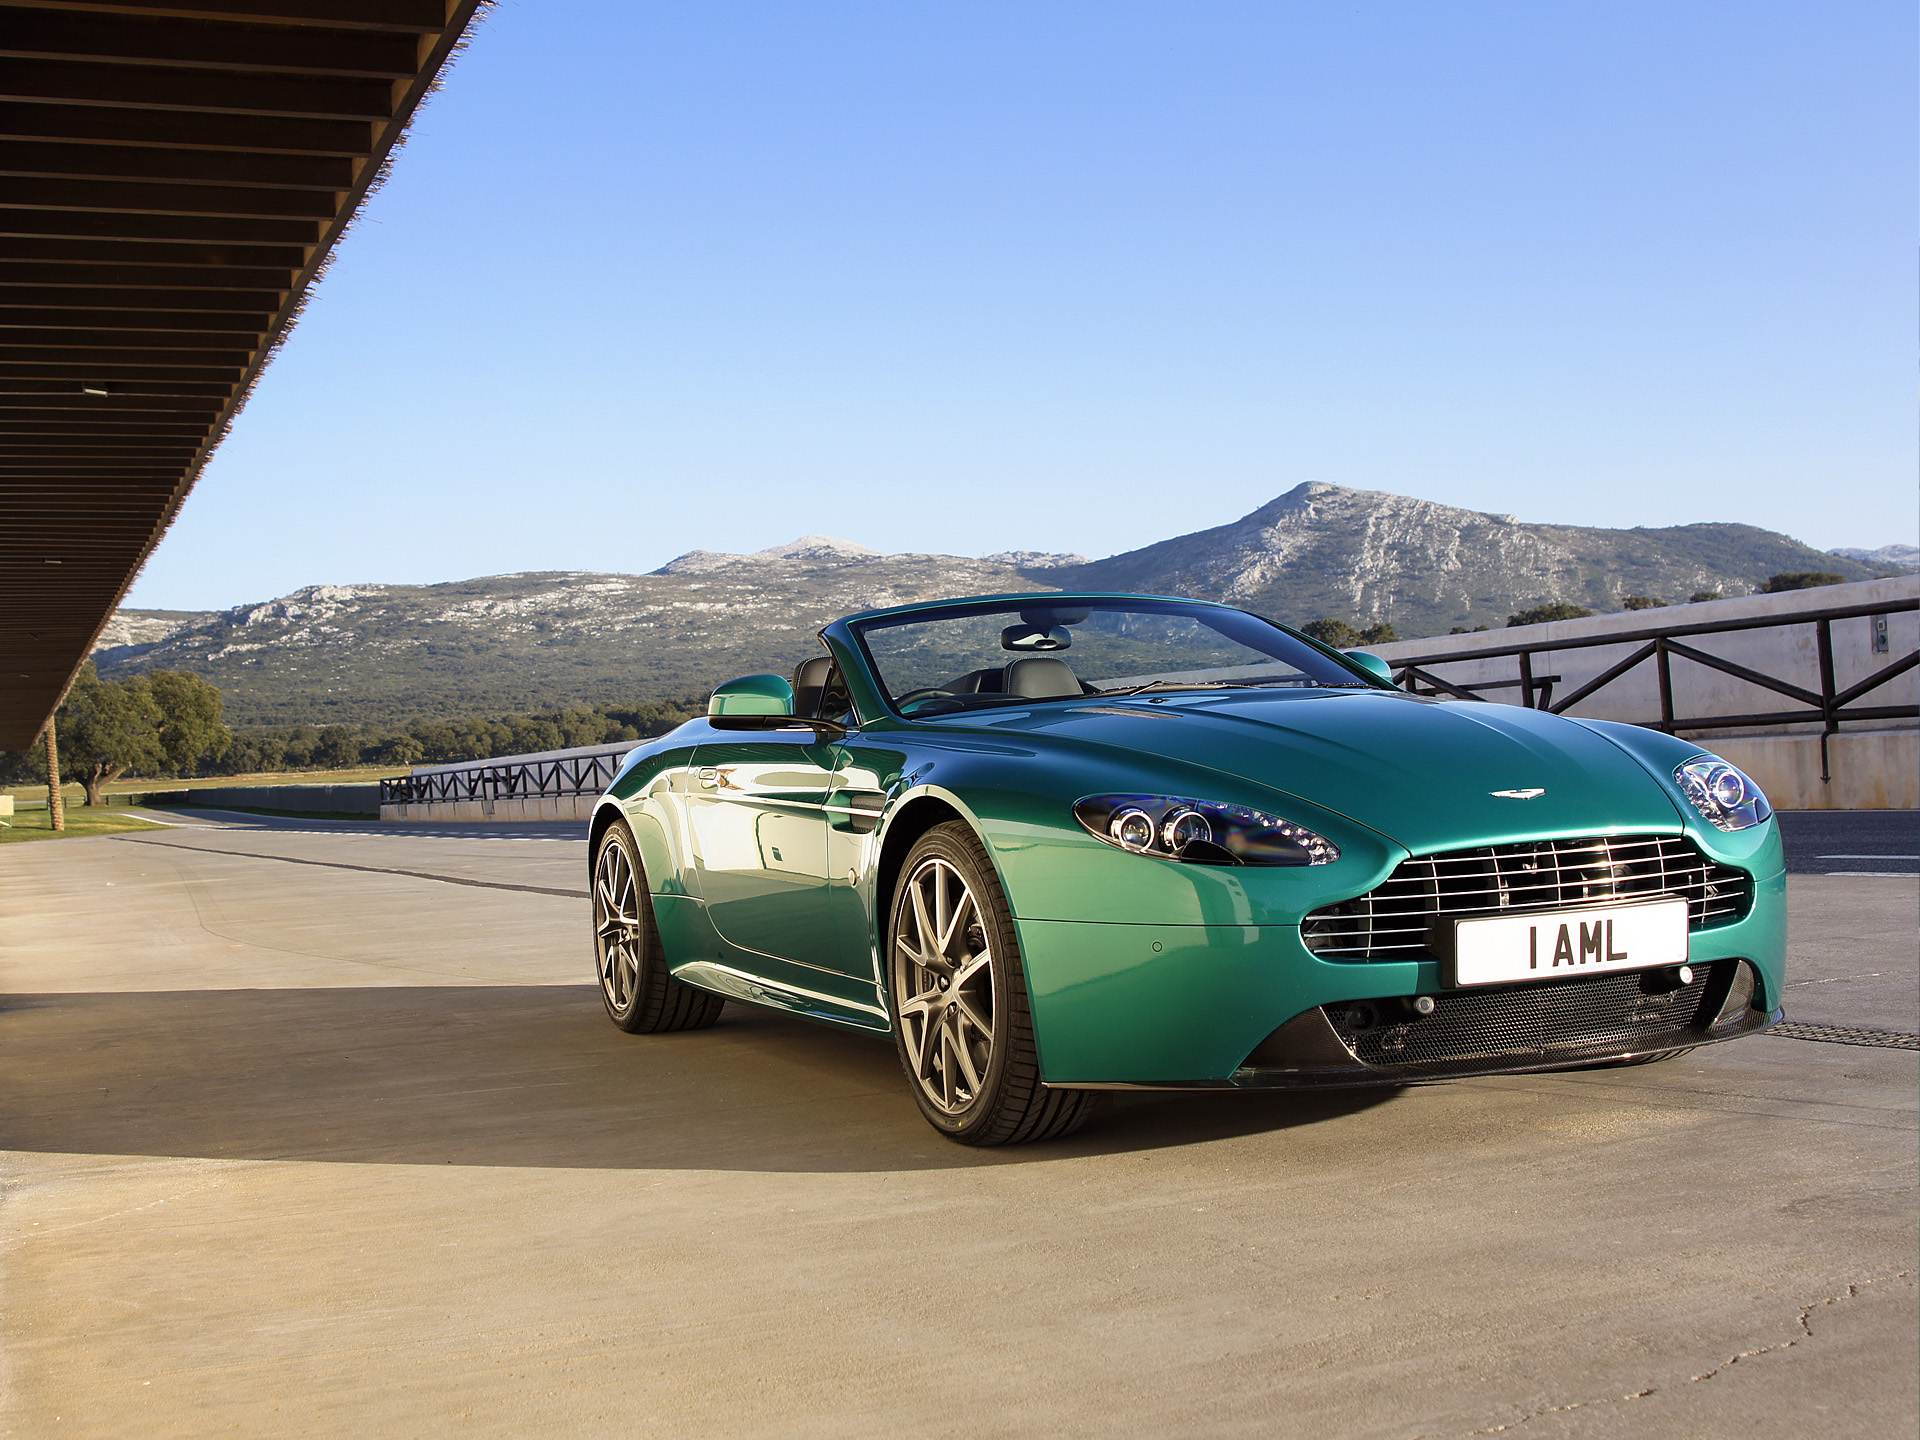 aston martin v8 vantage wallpapers pictures images. Black Bedroom Furniture Sets. Home Design Ideas